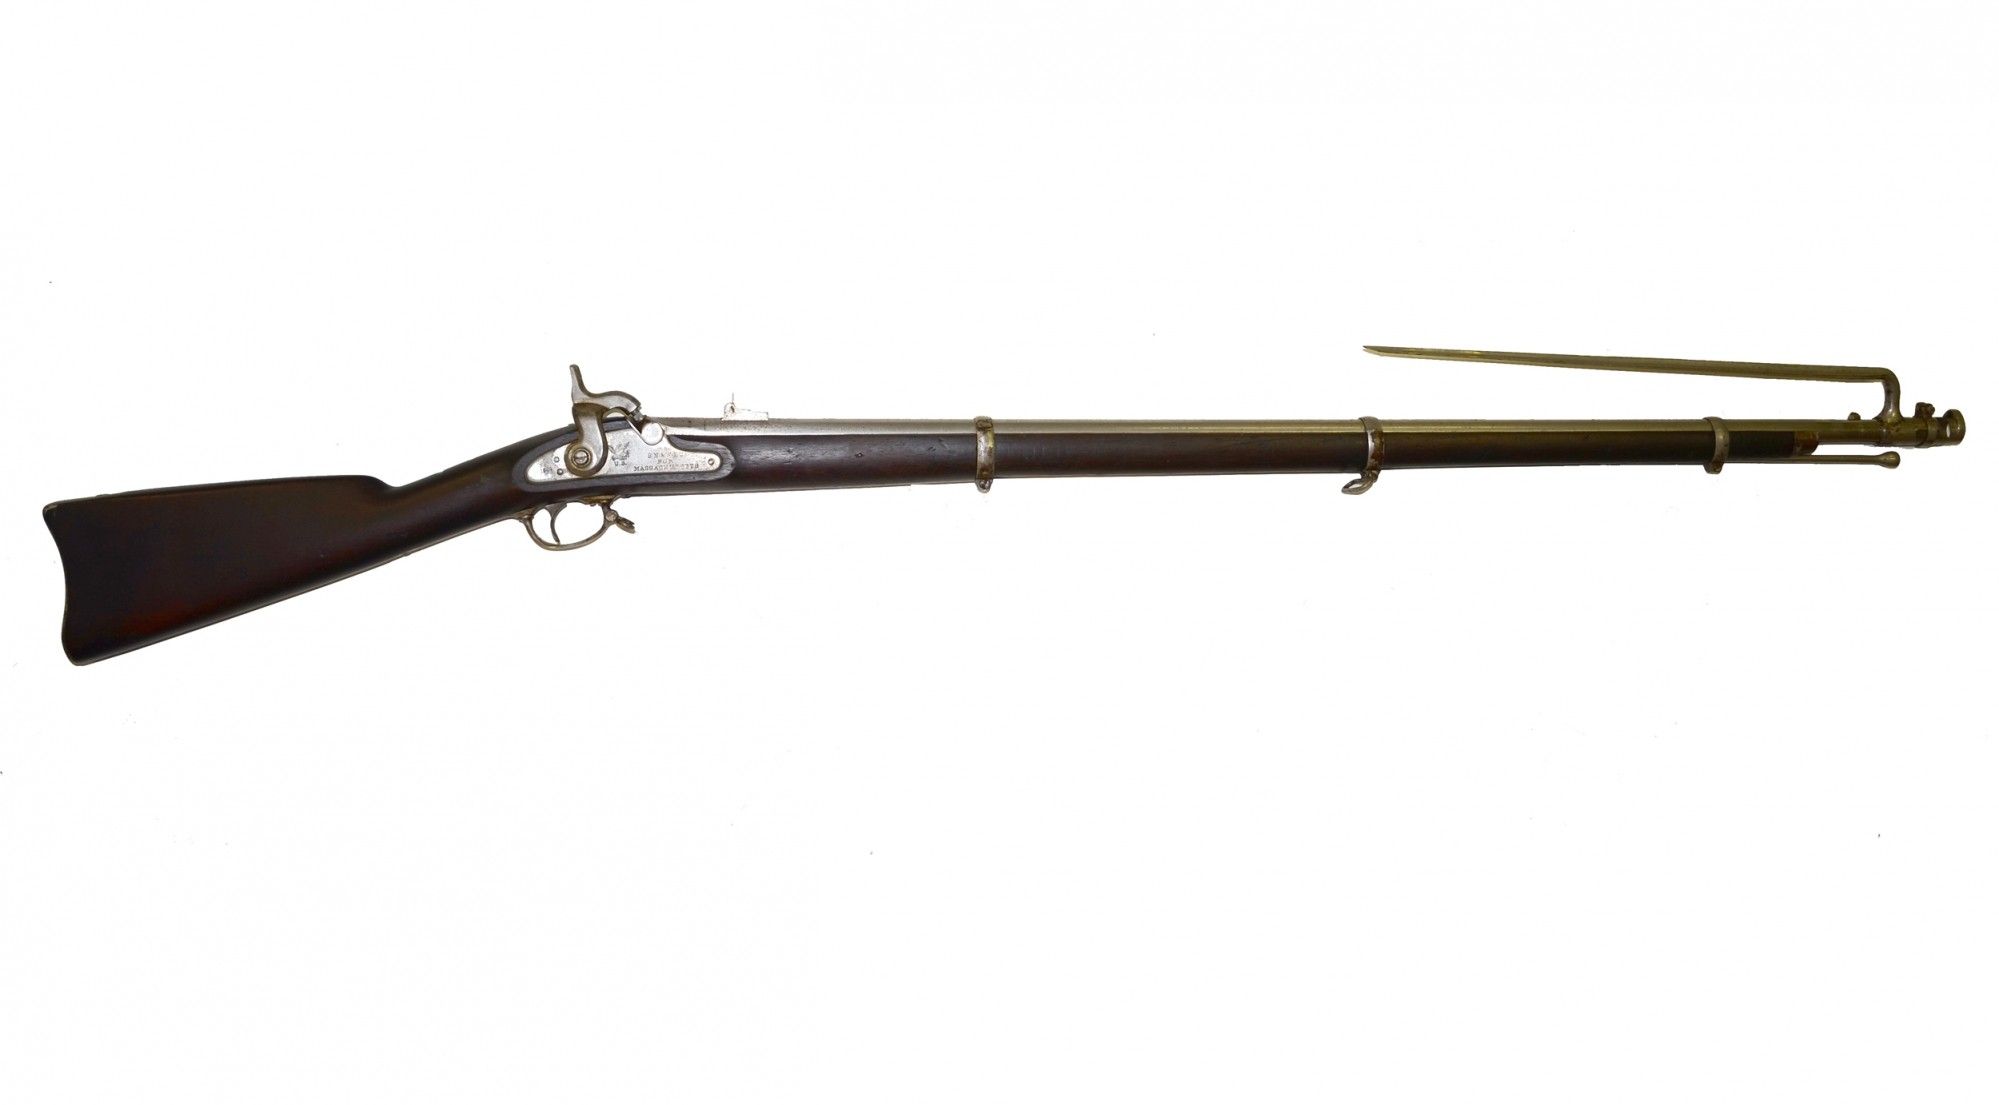 M1863 'SN&WTC' CONTRACT RIFLED MUSKET WITH BAYONET